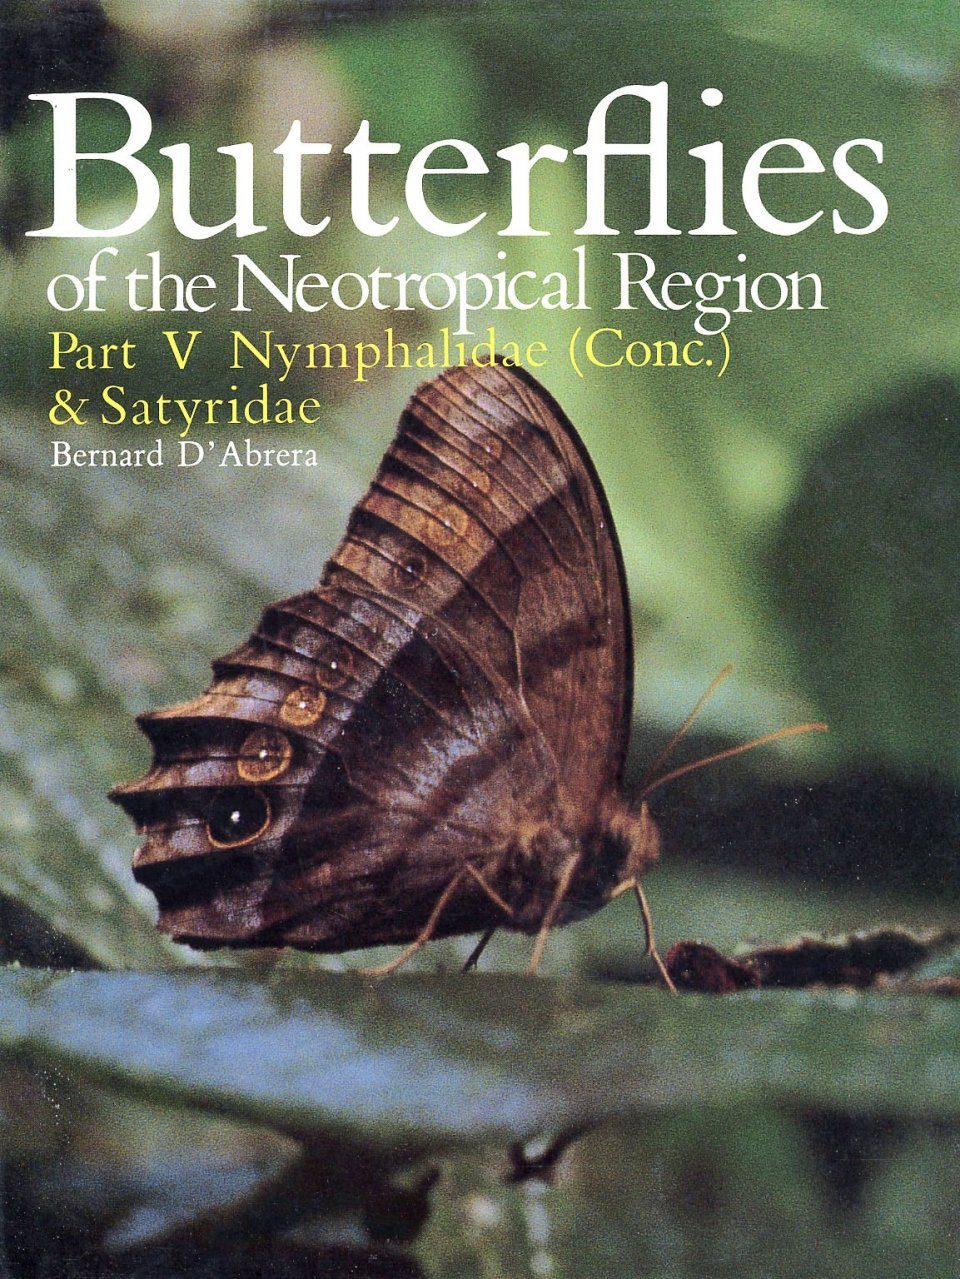 Butterflies of the Neotropical Region, Part 5